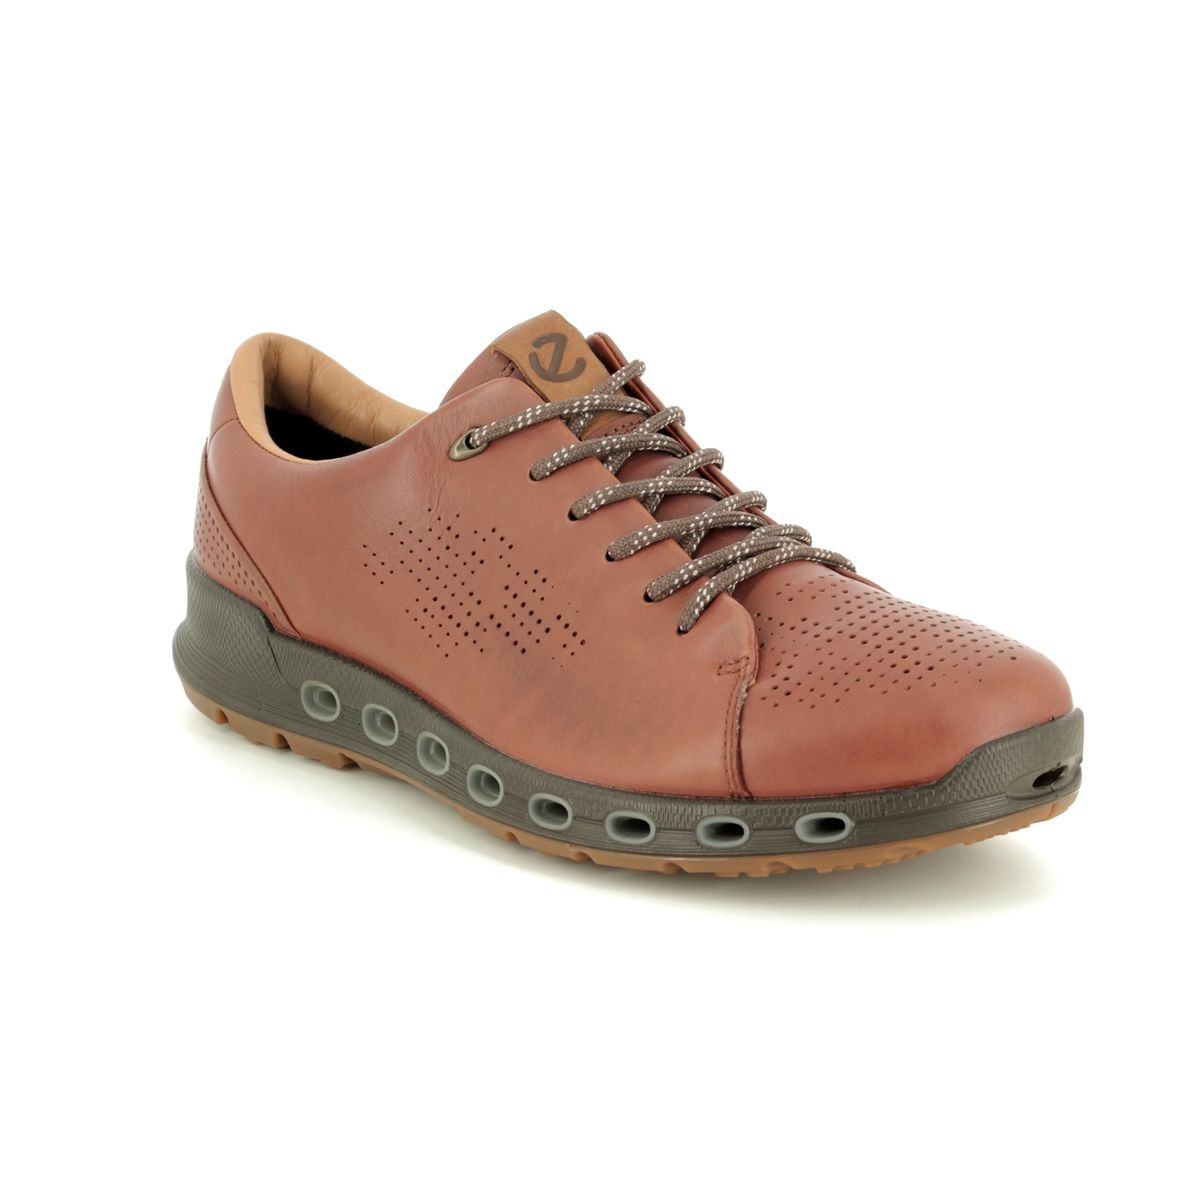 4dbf9fdfa9 842584/01014 Cool 2.0 Gore-tex Surround at Begg Shoes & Bags